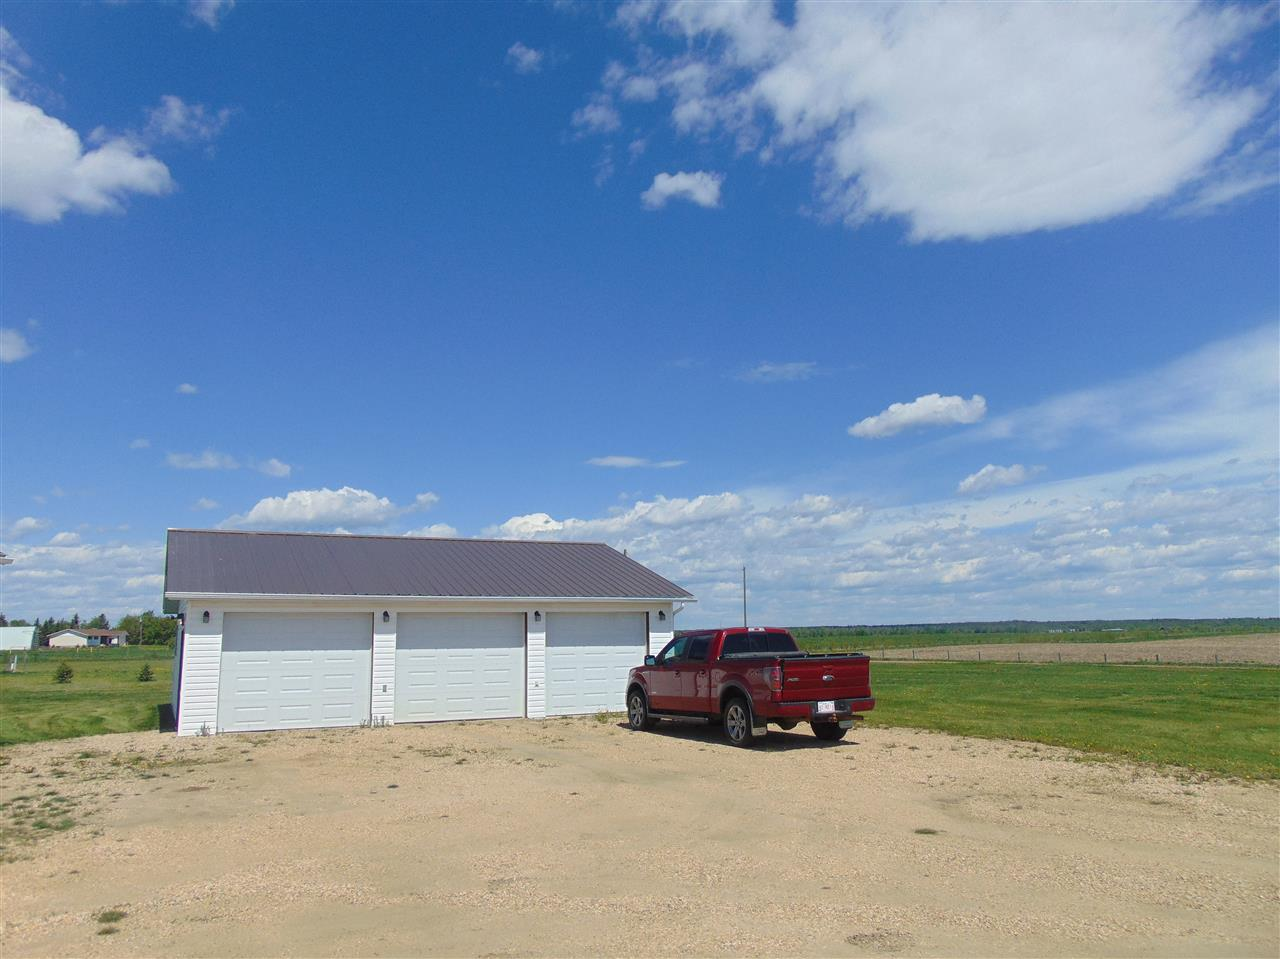 Photo 3: 60214 Range Road 251: Rural Westlock County House for sale : MLS(r) # E4059826